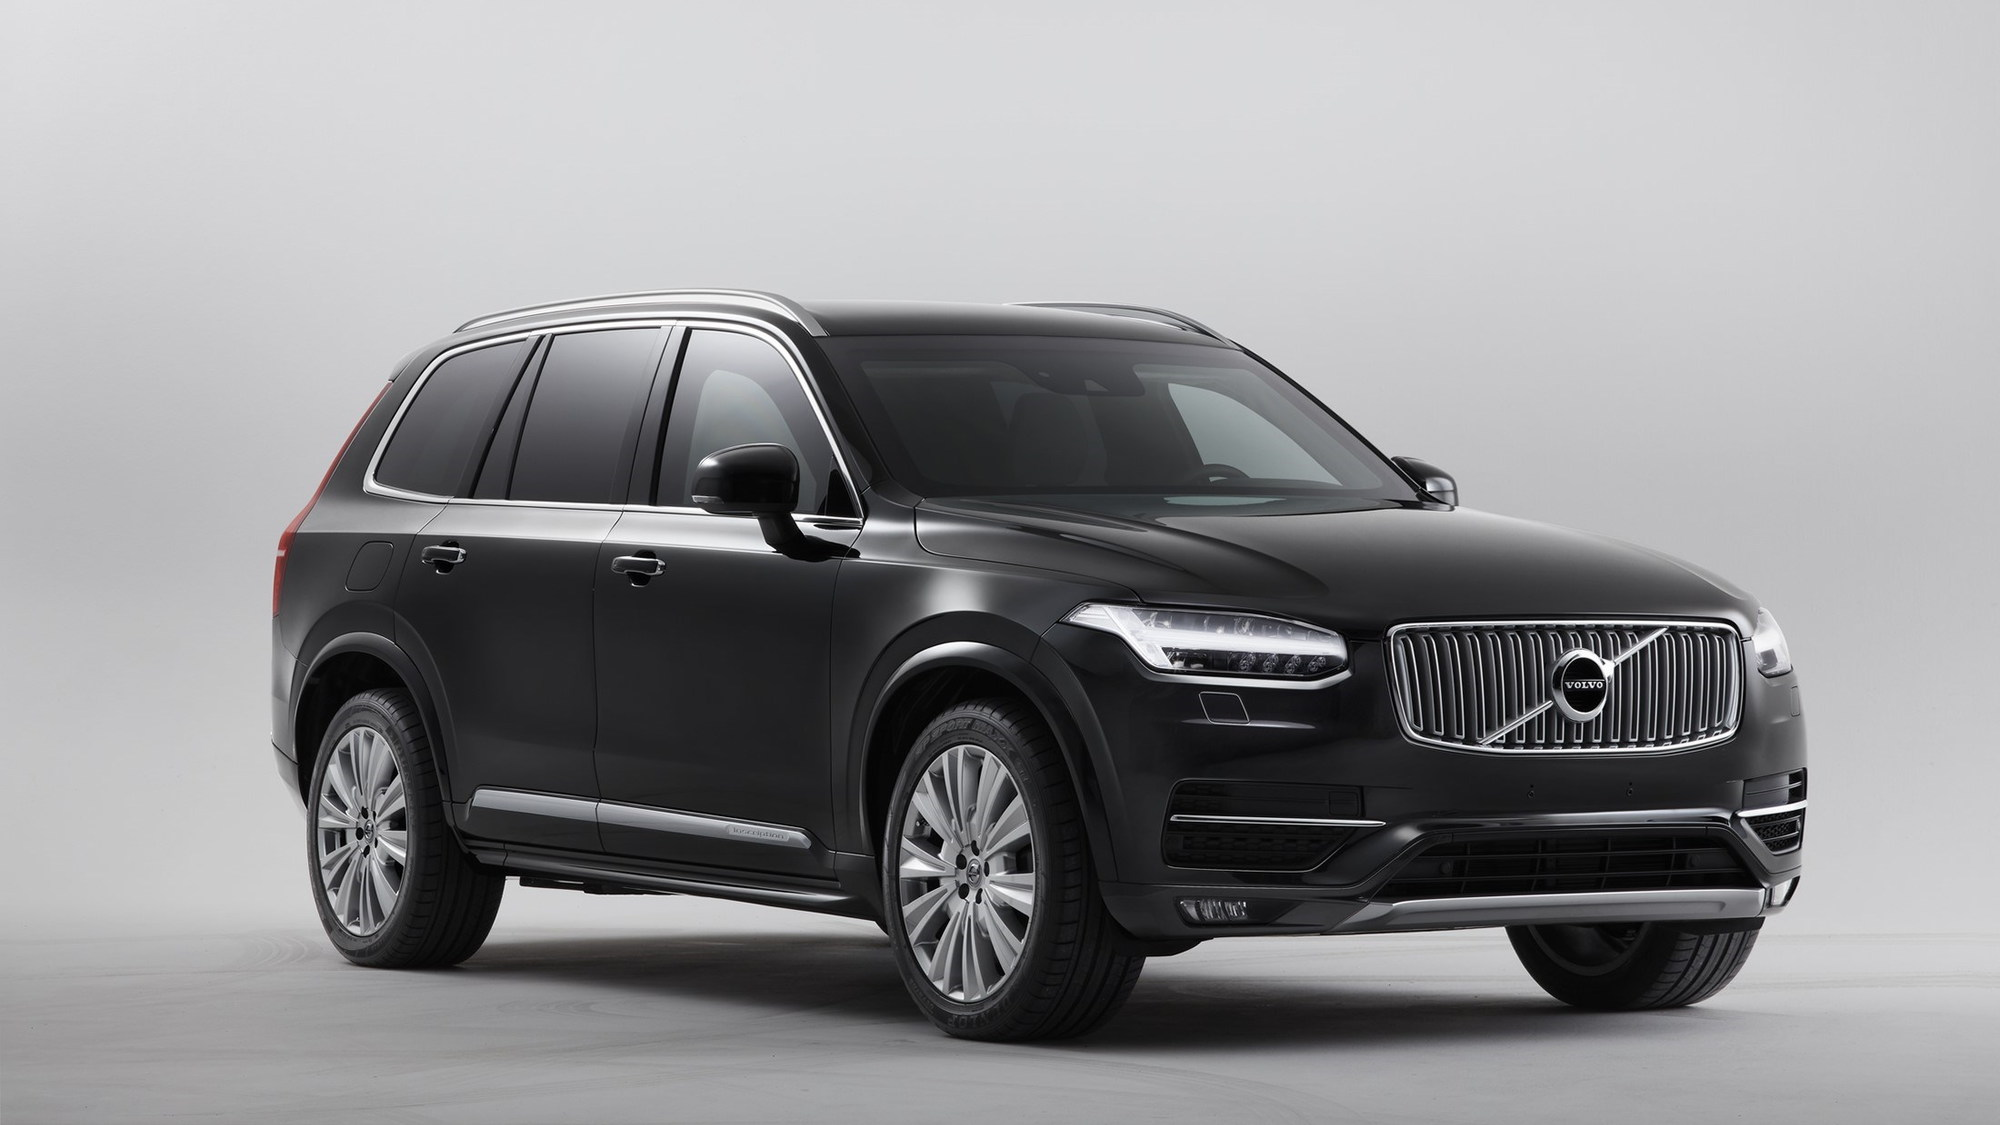 Volvo XC90 Armored